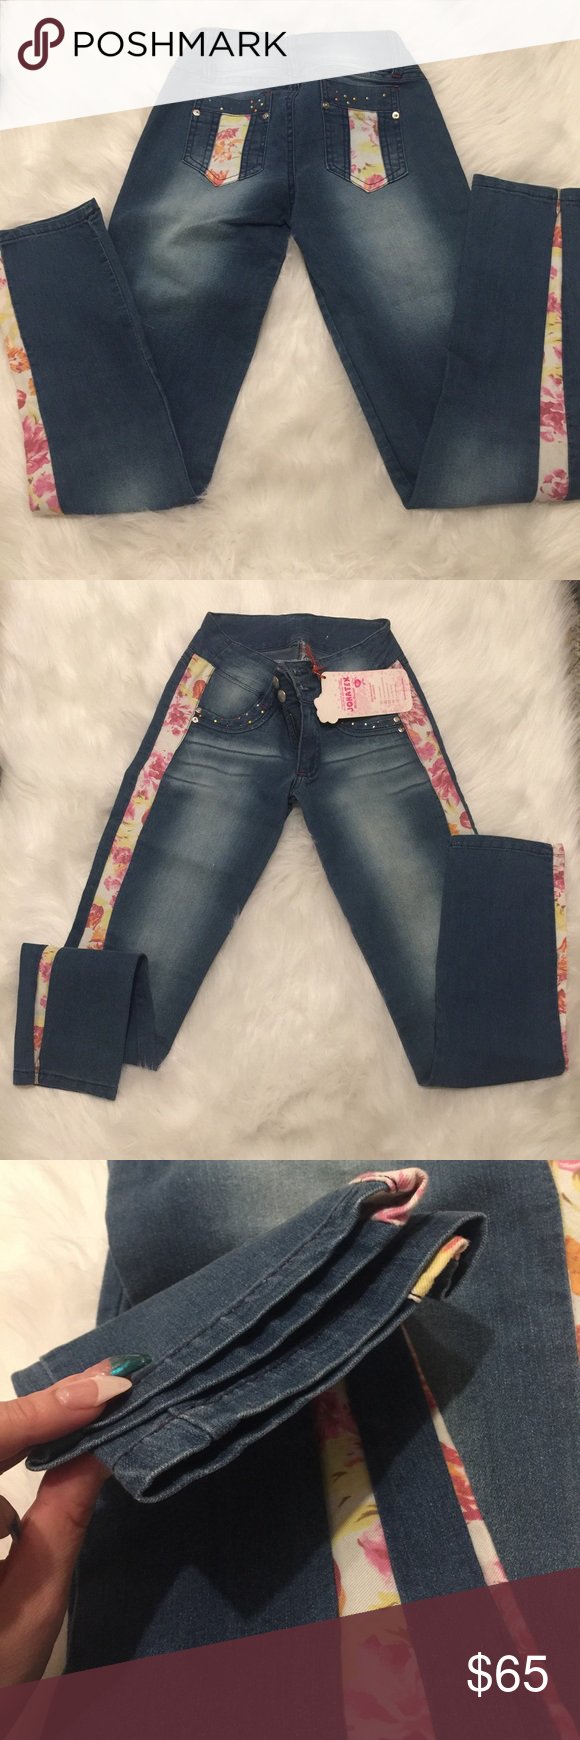 NWT Butt lift jeans💖 Colombian about live jeans brand-new with tags still attached 100% authentic you put them on a lift and shapes your booty two sizes up Jeans